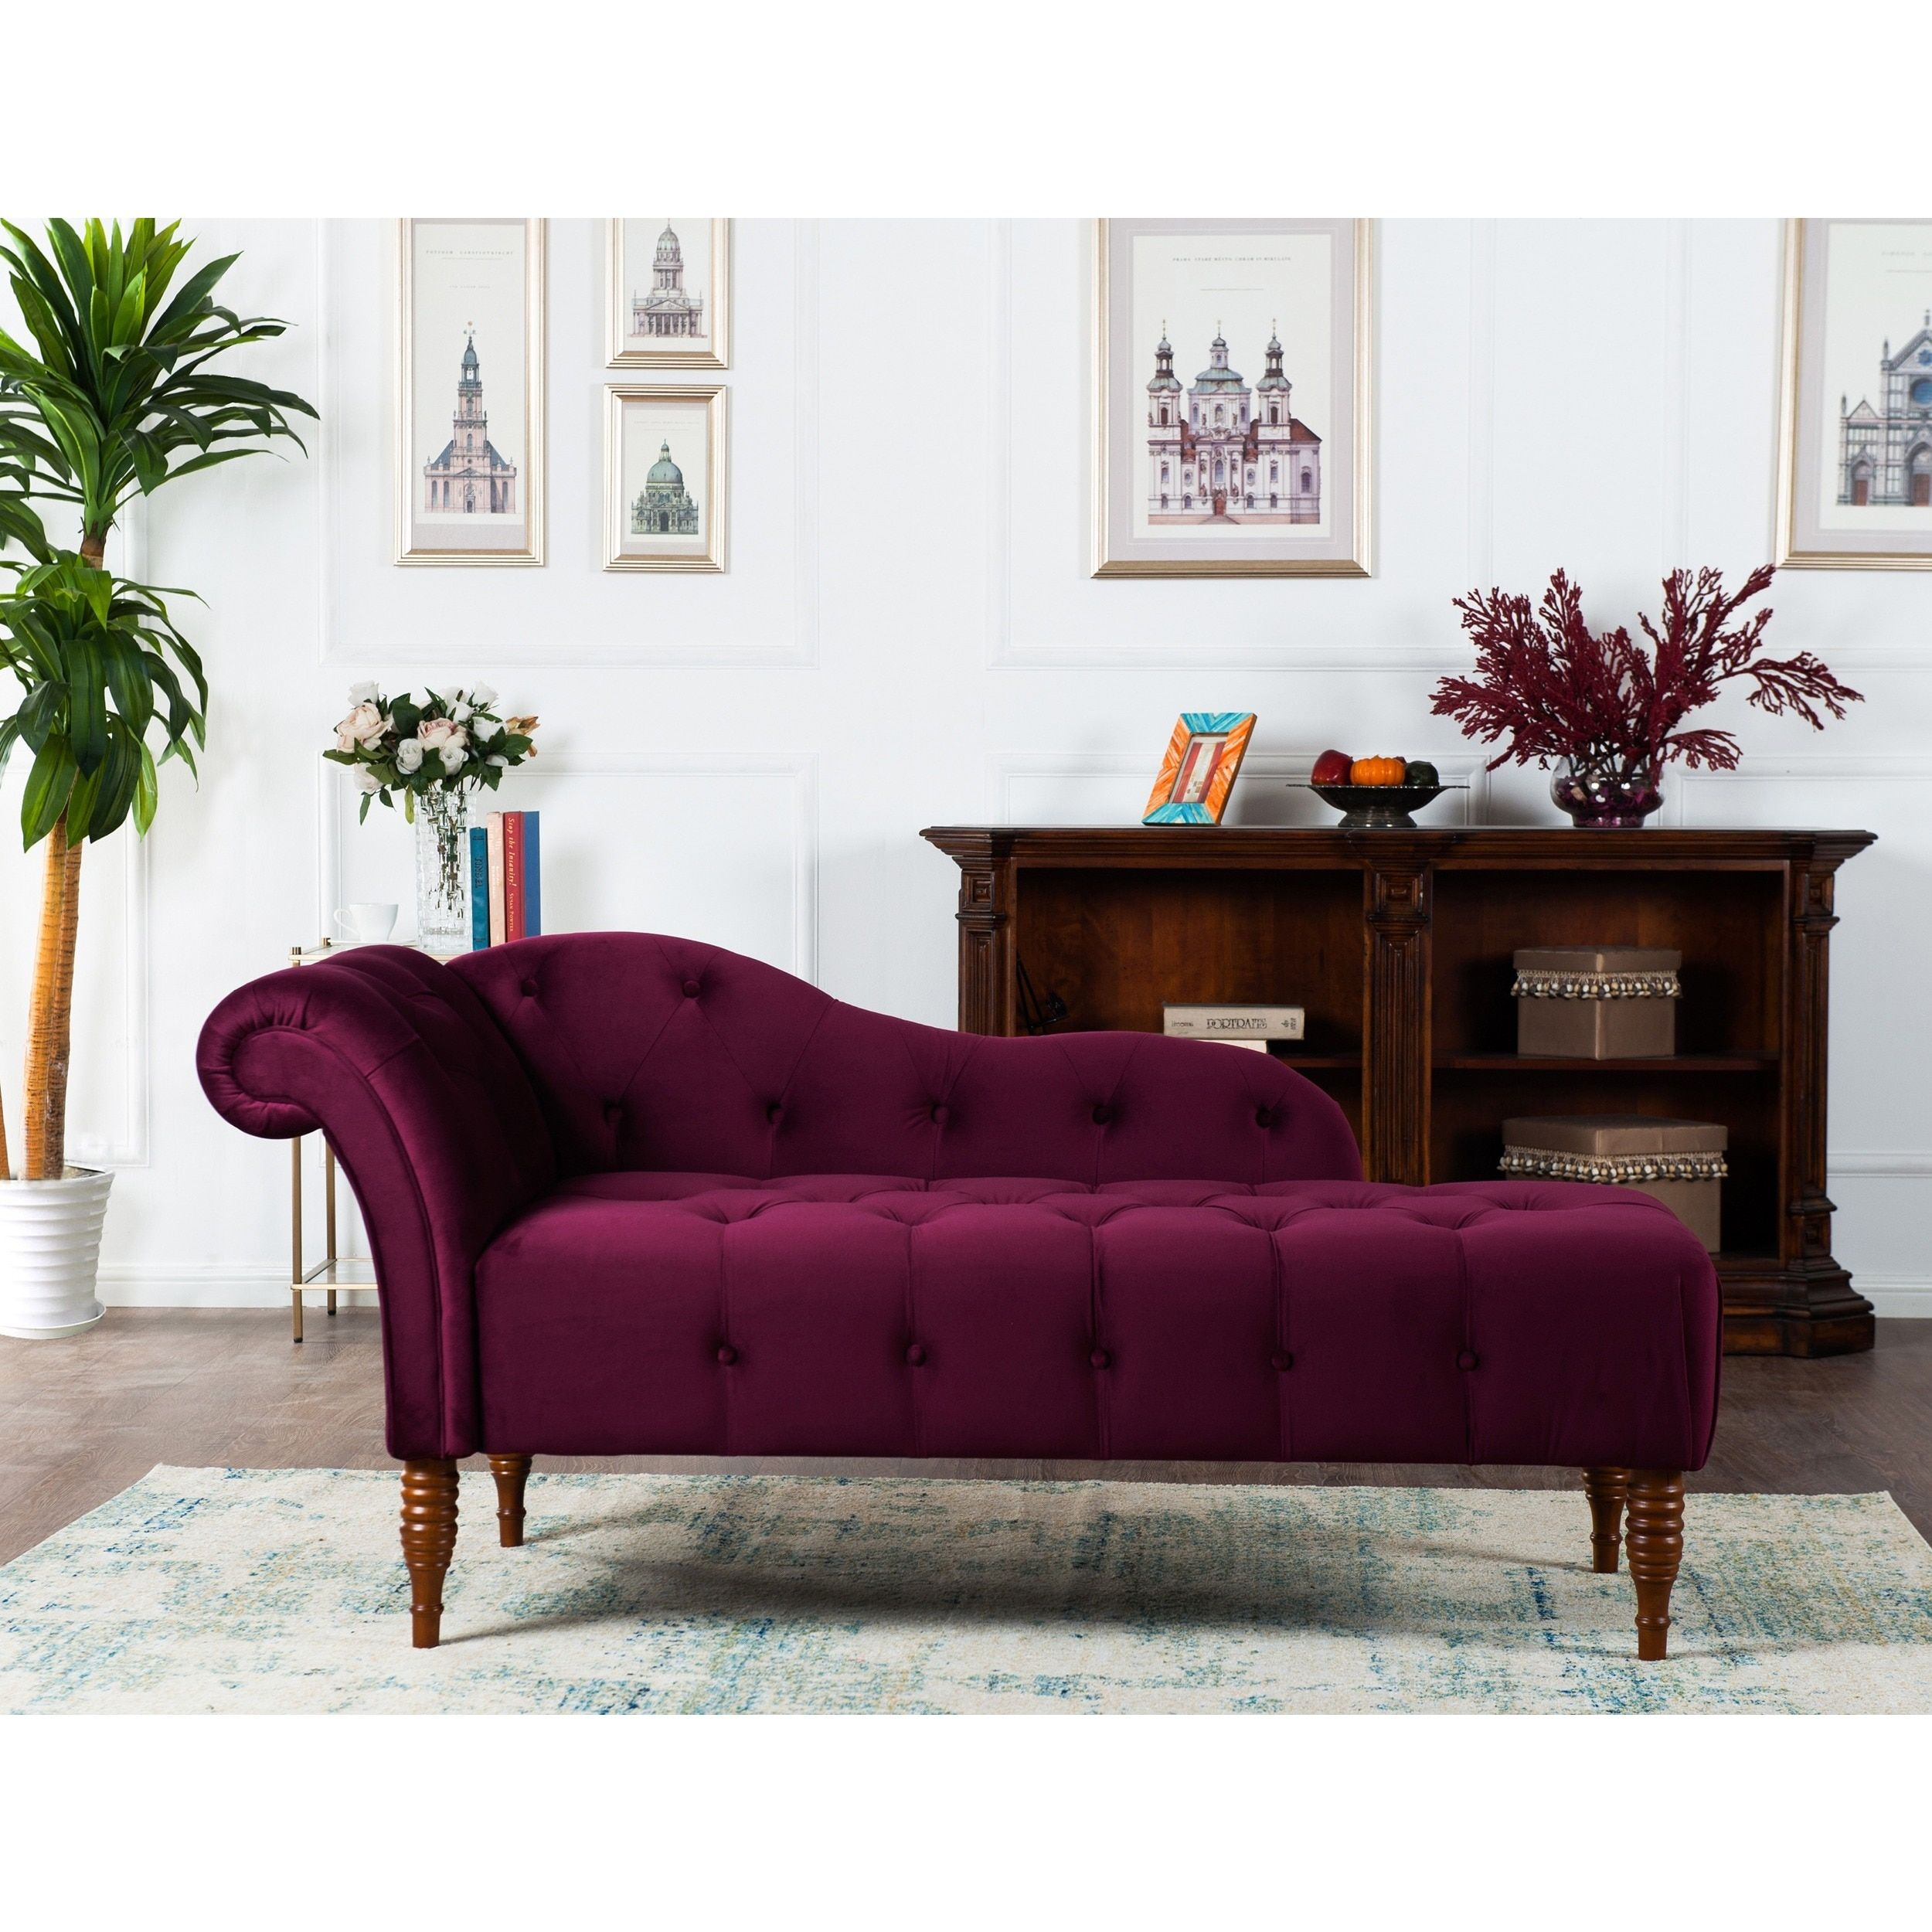 Jennifer Taylor Samuel Tufted Chaise Lounge (navy blue)   Sillones ...